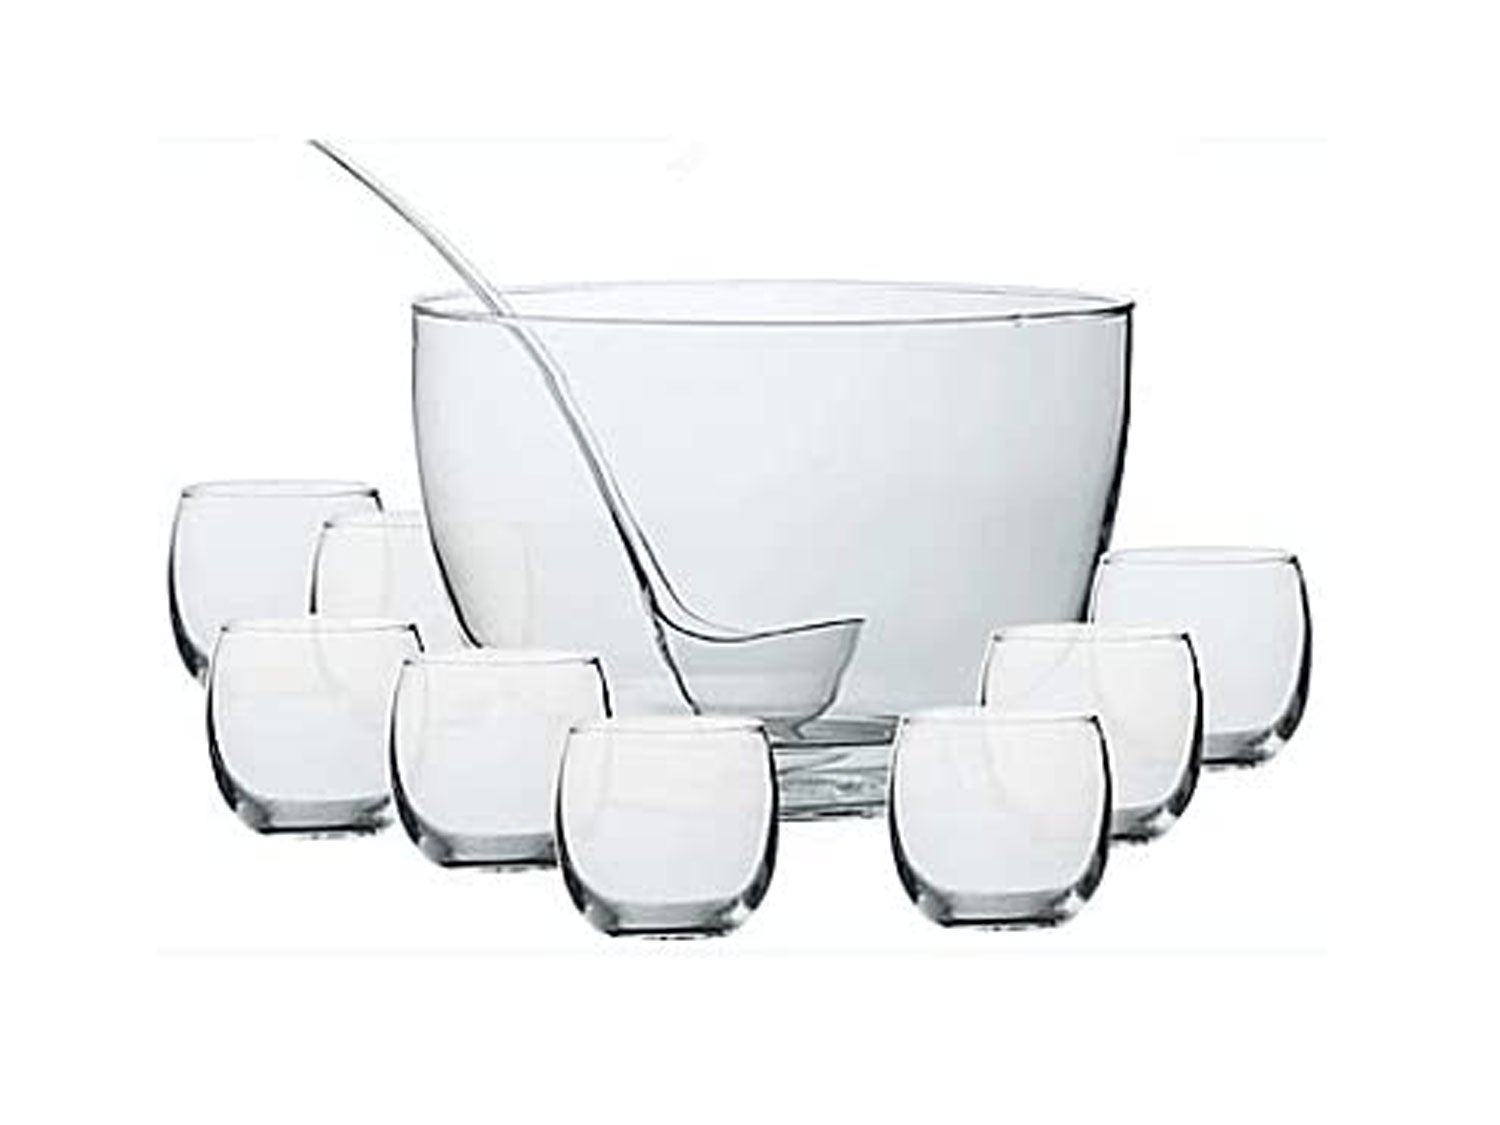 Intent 10-Piece Punch Bowl Set with Laddle, 10.5 Qt. Punch Bowl and 11 Oz. Glasses by Dailyware